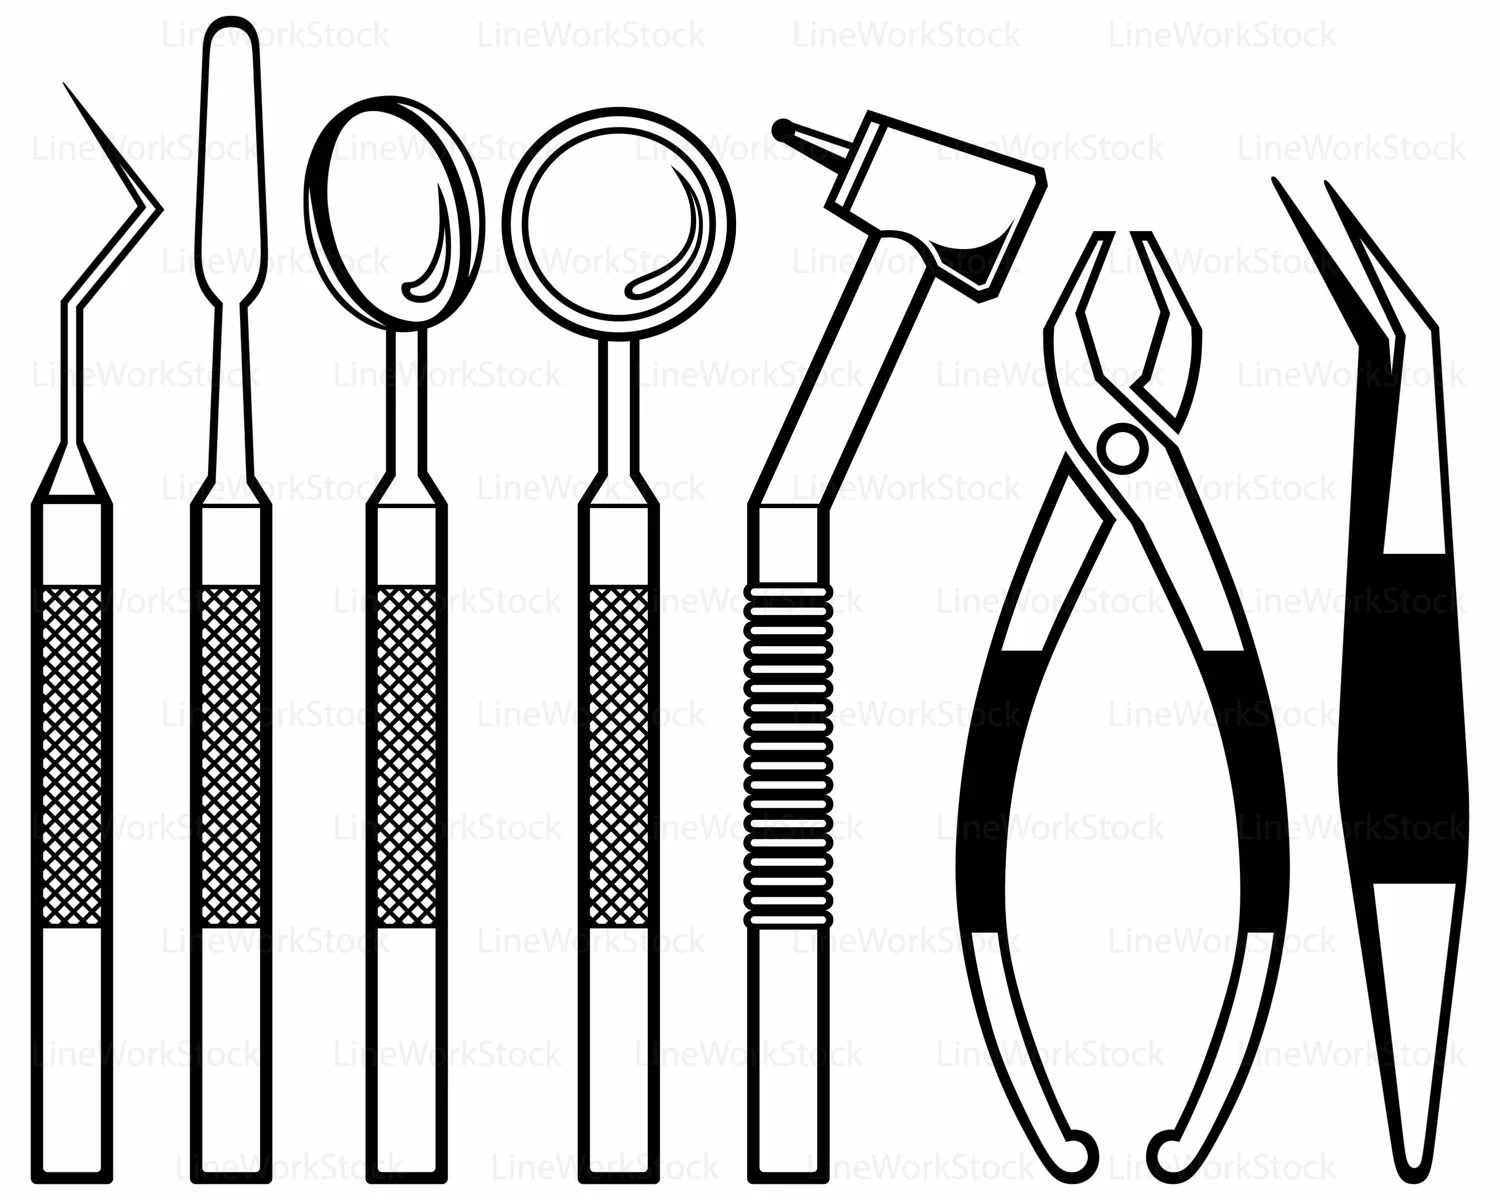 Dental equipment svg/dental clipart/dental svg/dental